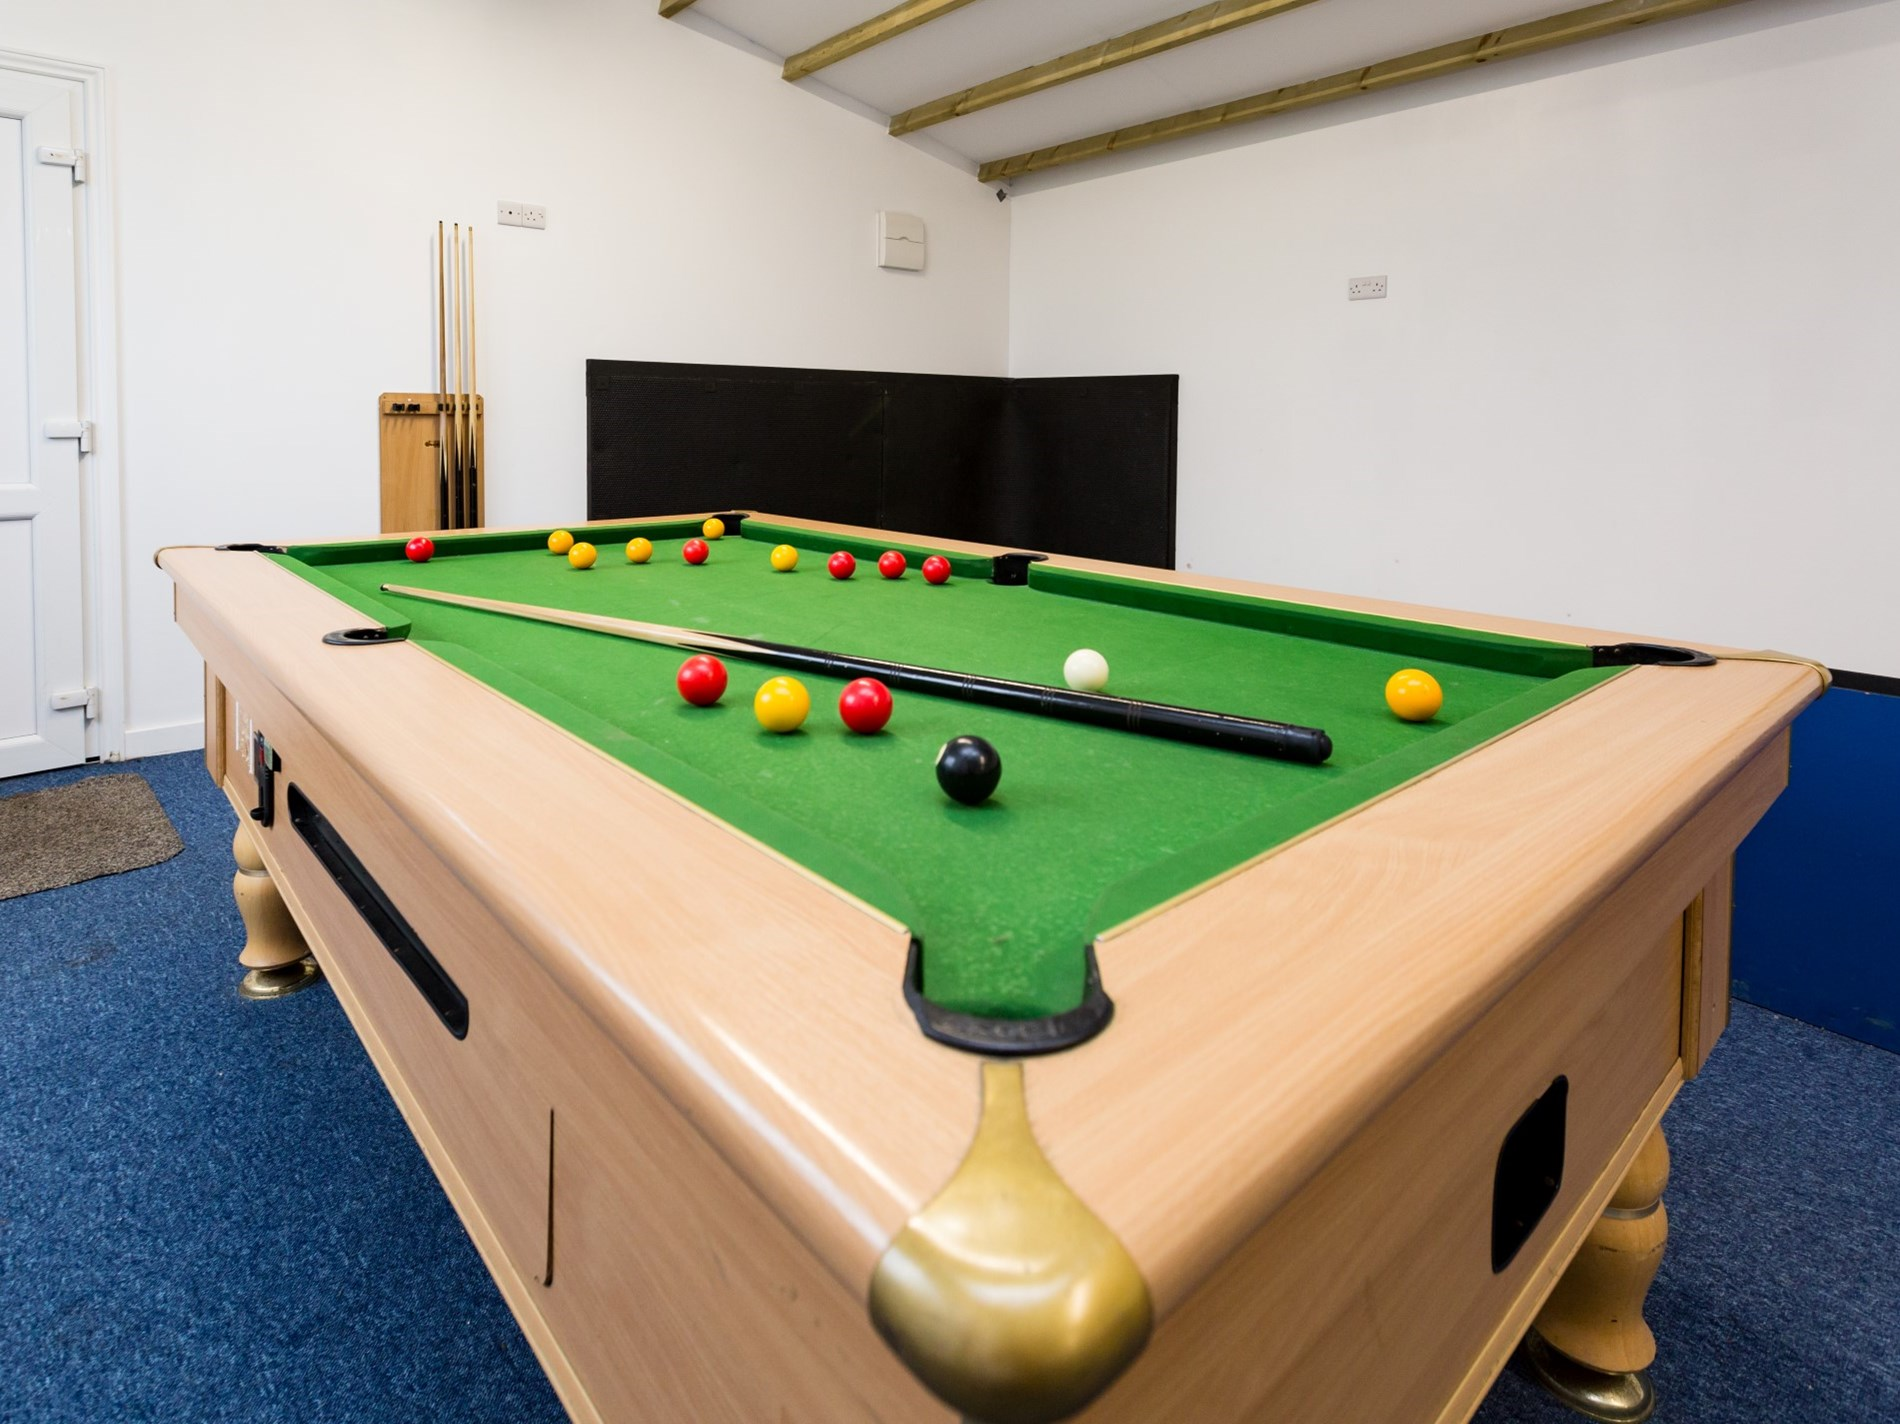 Pool table in the shared games barn